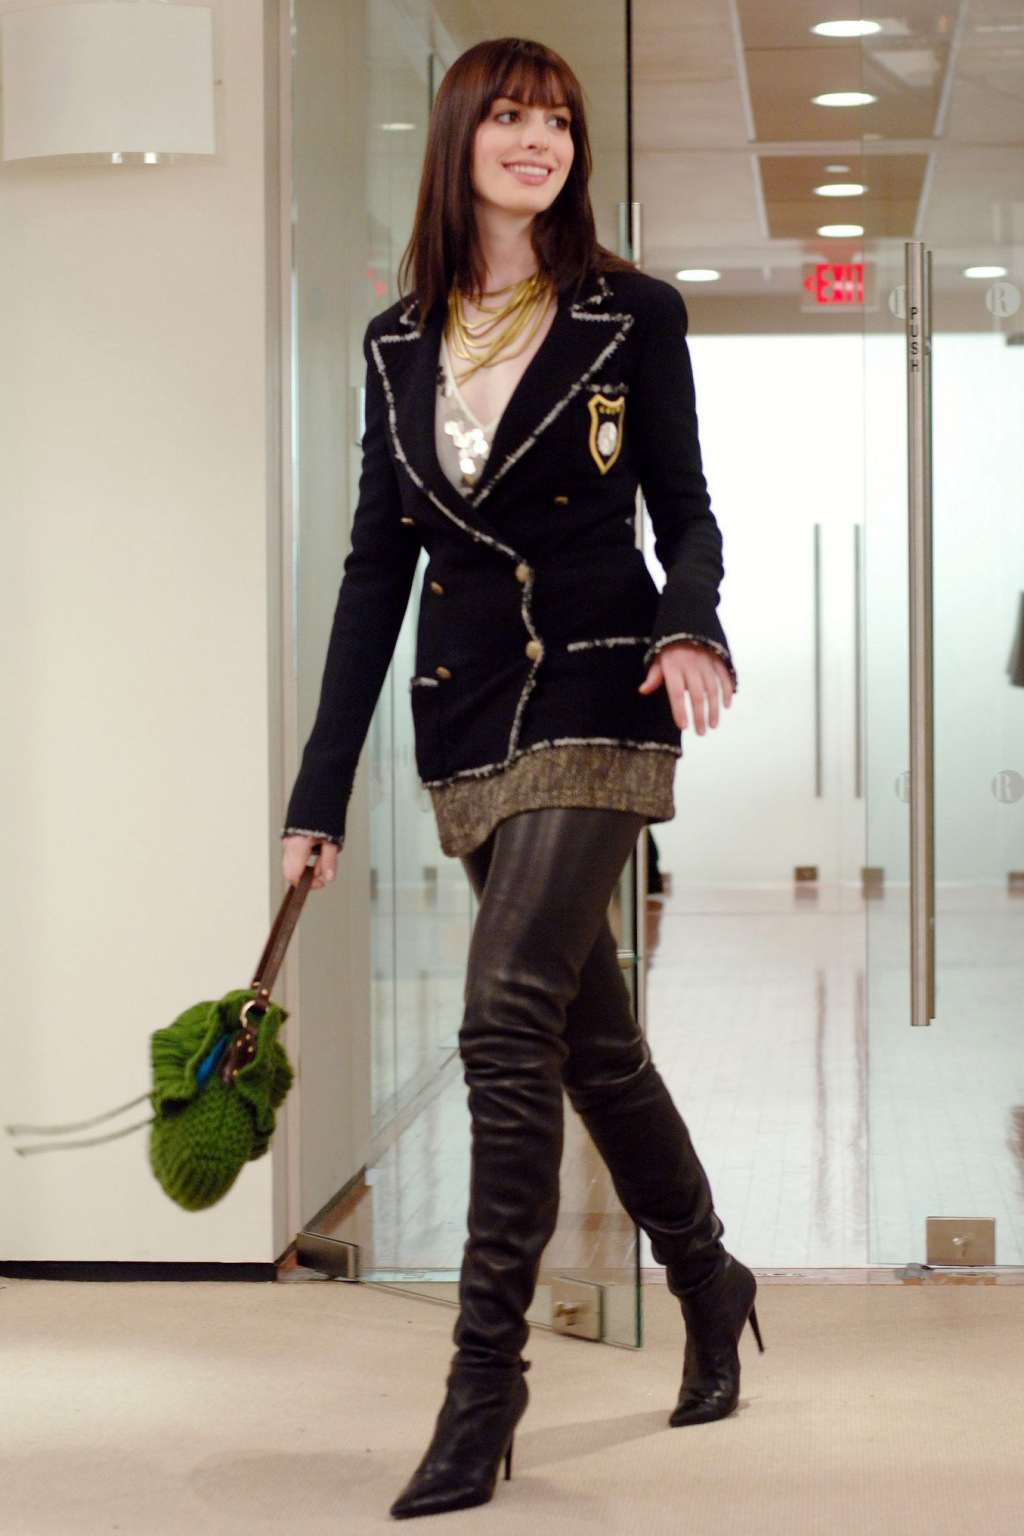 DWP-96 Andy's (Anne Hathaway) outfit features a black wool crepe Chanel jacket; Kristina Ti brown tweed mini-skirt; ecru vertical striped gauze deep v-neck blouse; black leather thigh high boots; an antique gold necklace and black leather Chanel gloves. PHOTOGRAPHS TO BE USED SOLELY FOR ADVERTISING, PROMOTION, PUBLICITY OR REVIEWS OF THIS SPECIFIC MOTION PICTURE AND TO REMAIN THE PROPERTY OF THE STUDIO. NOT FOR SALE OR REDISTRIBUTION.